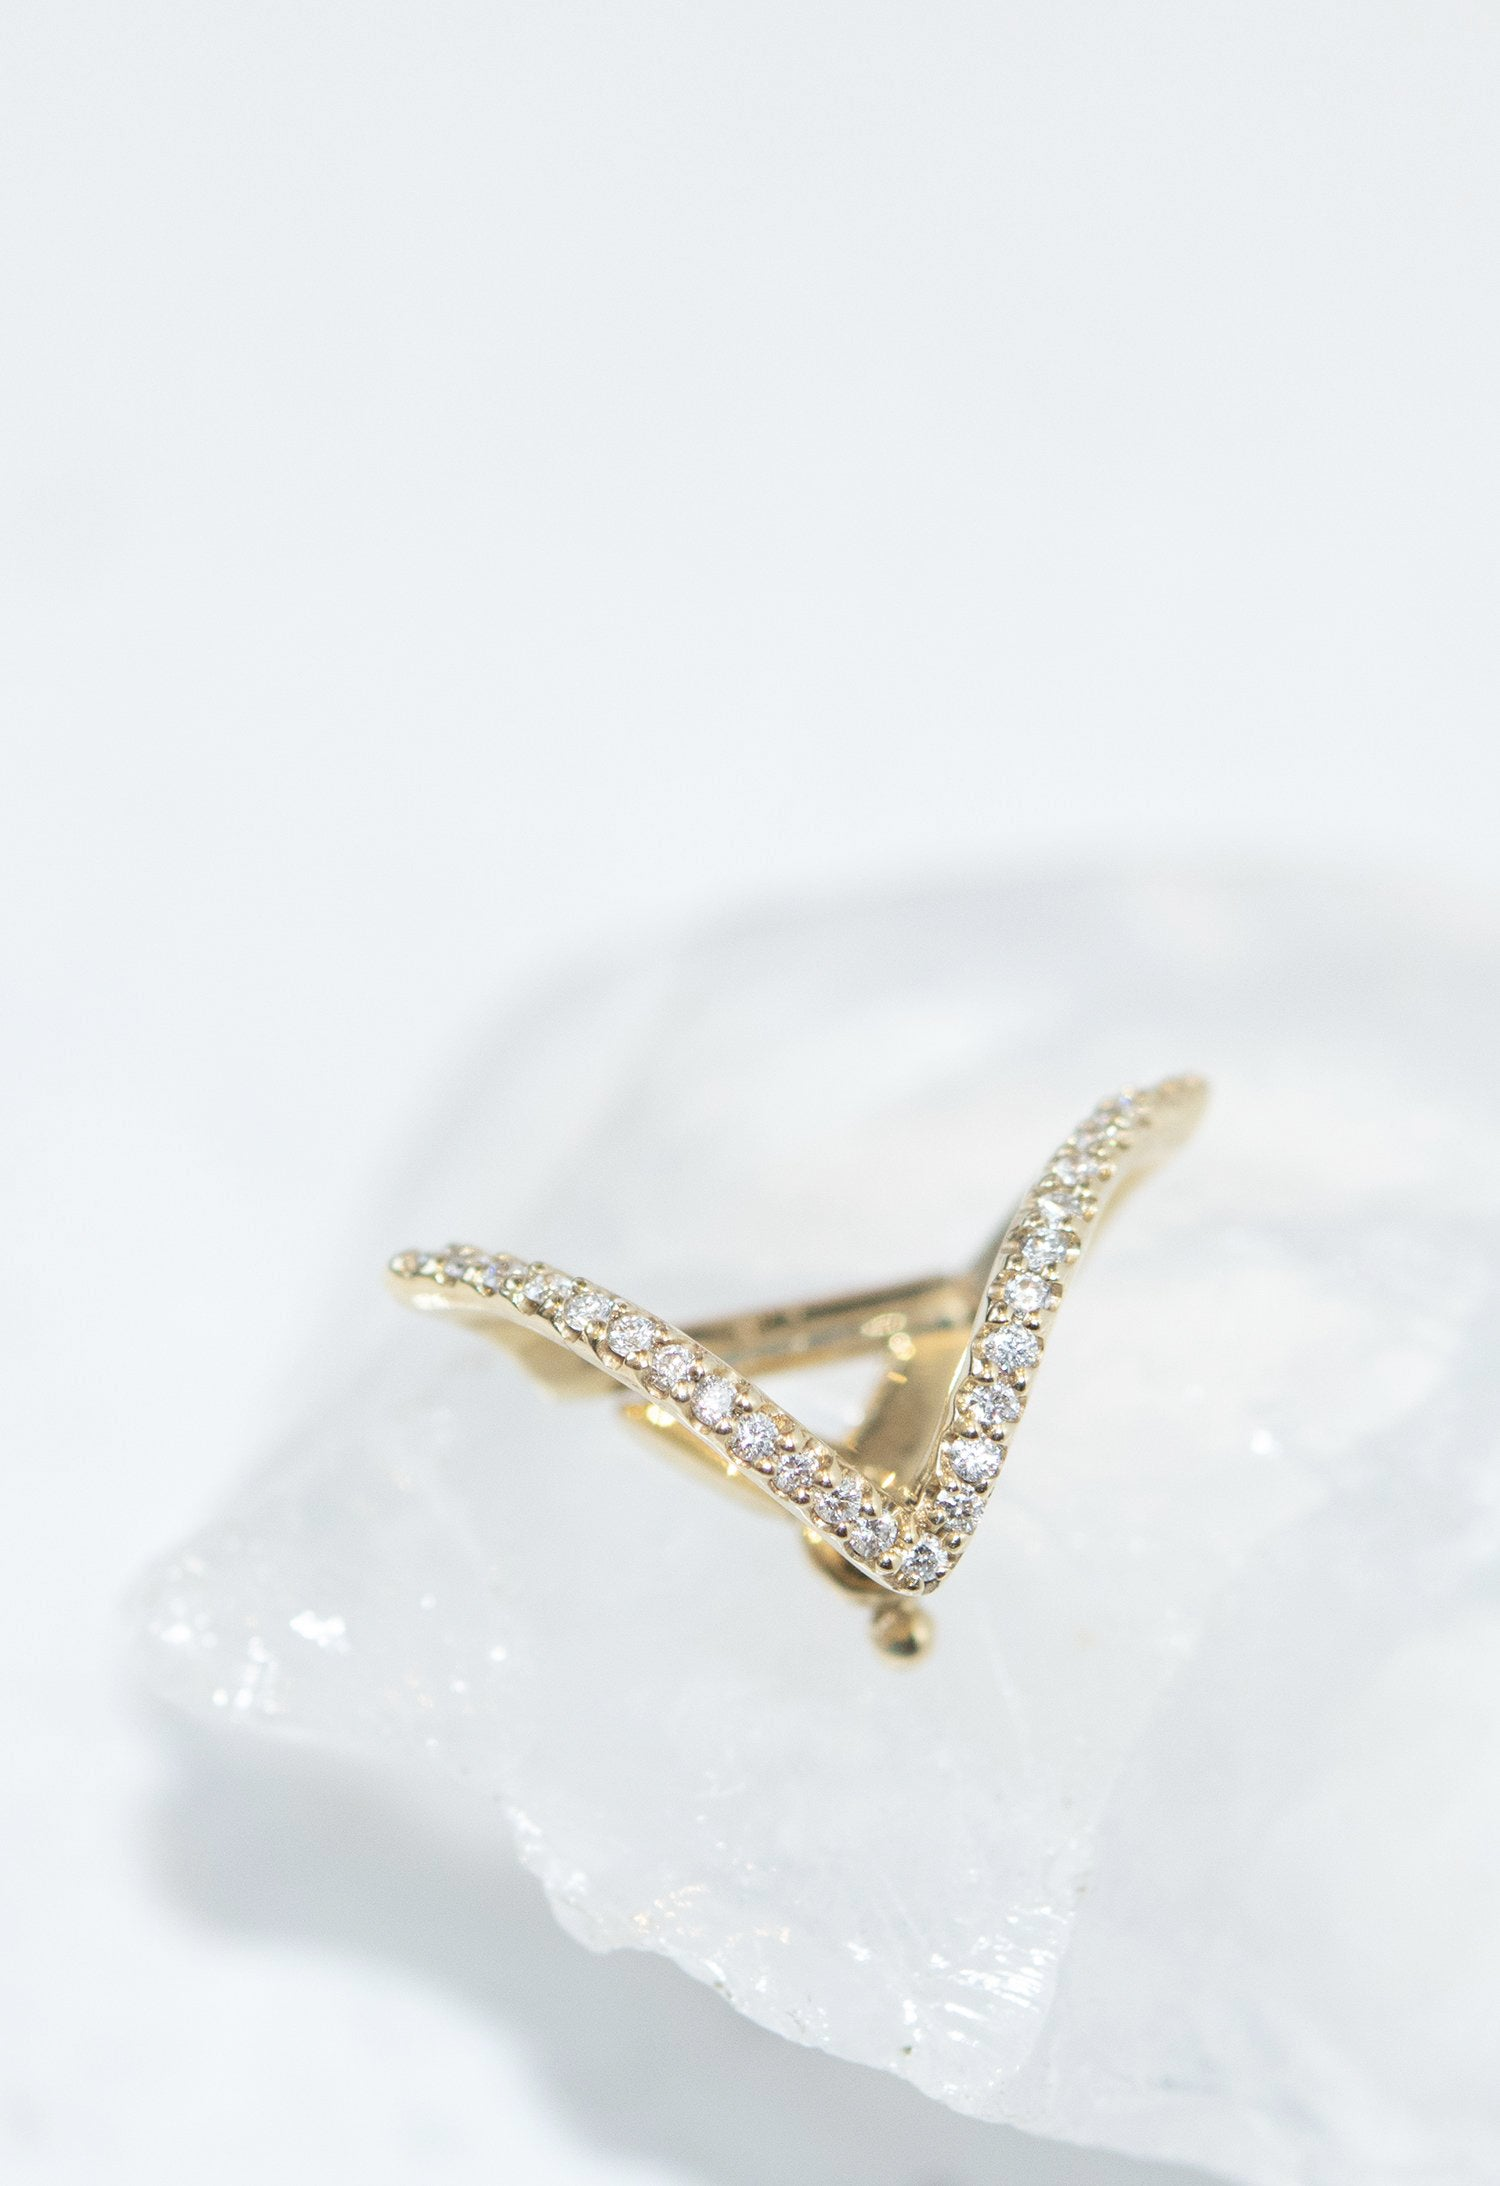 Micro-Pave Curved Triangle Ear Cuff Single Earring